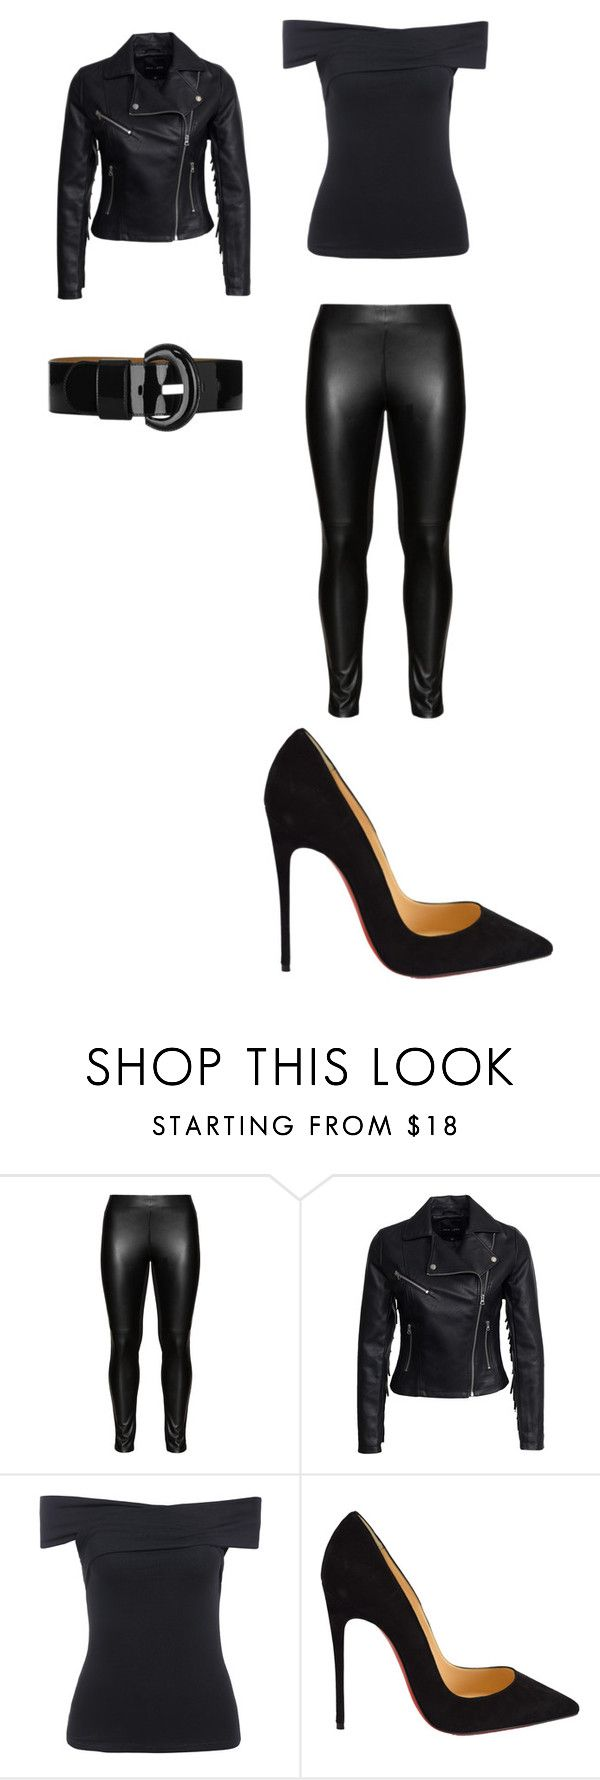 """""""Sandy from Grease"""" by alisonpare ❤ liked on Polyvore featuring mode, Studio, New Look, Christian Louboutin et Karen Millen"""